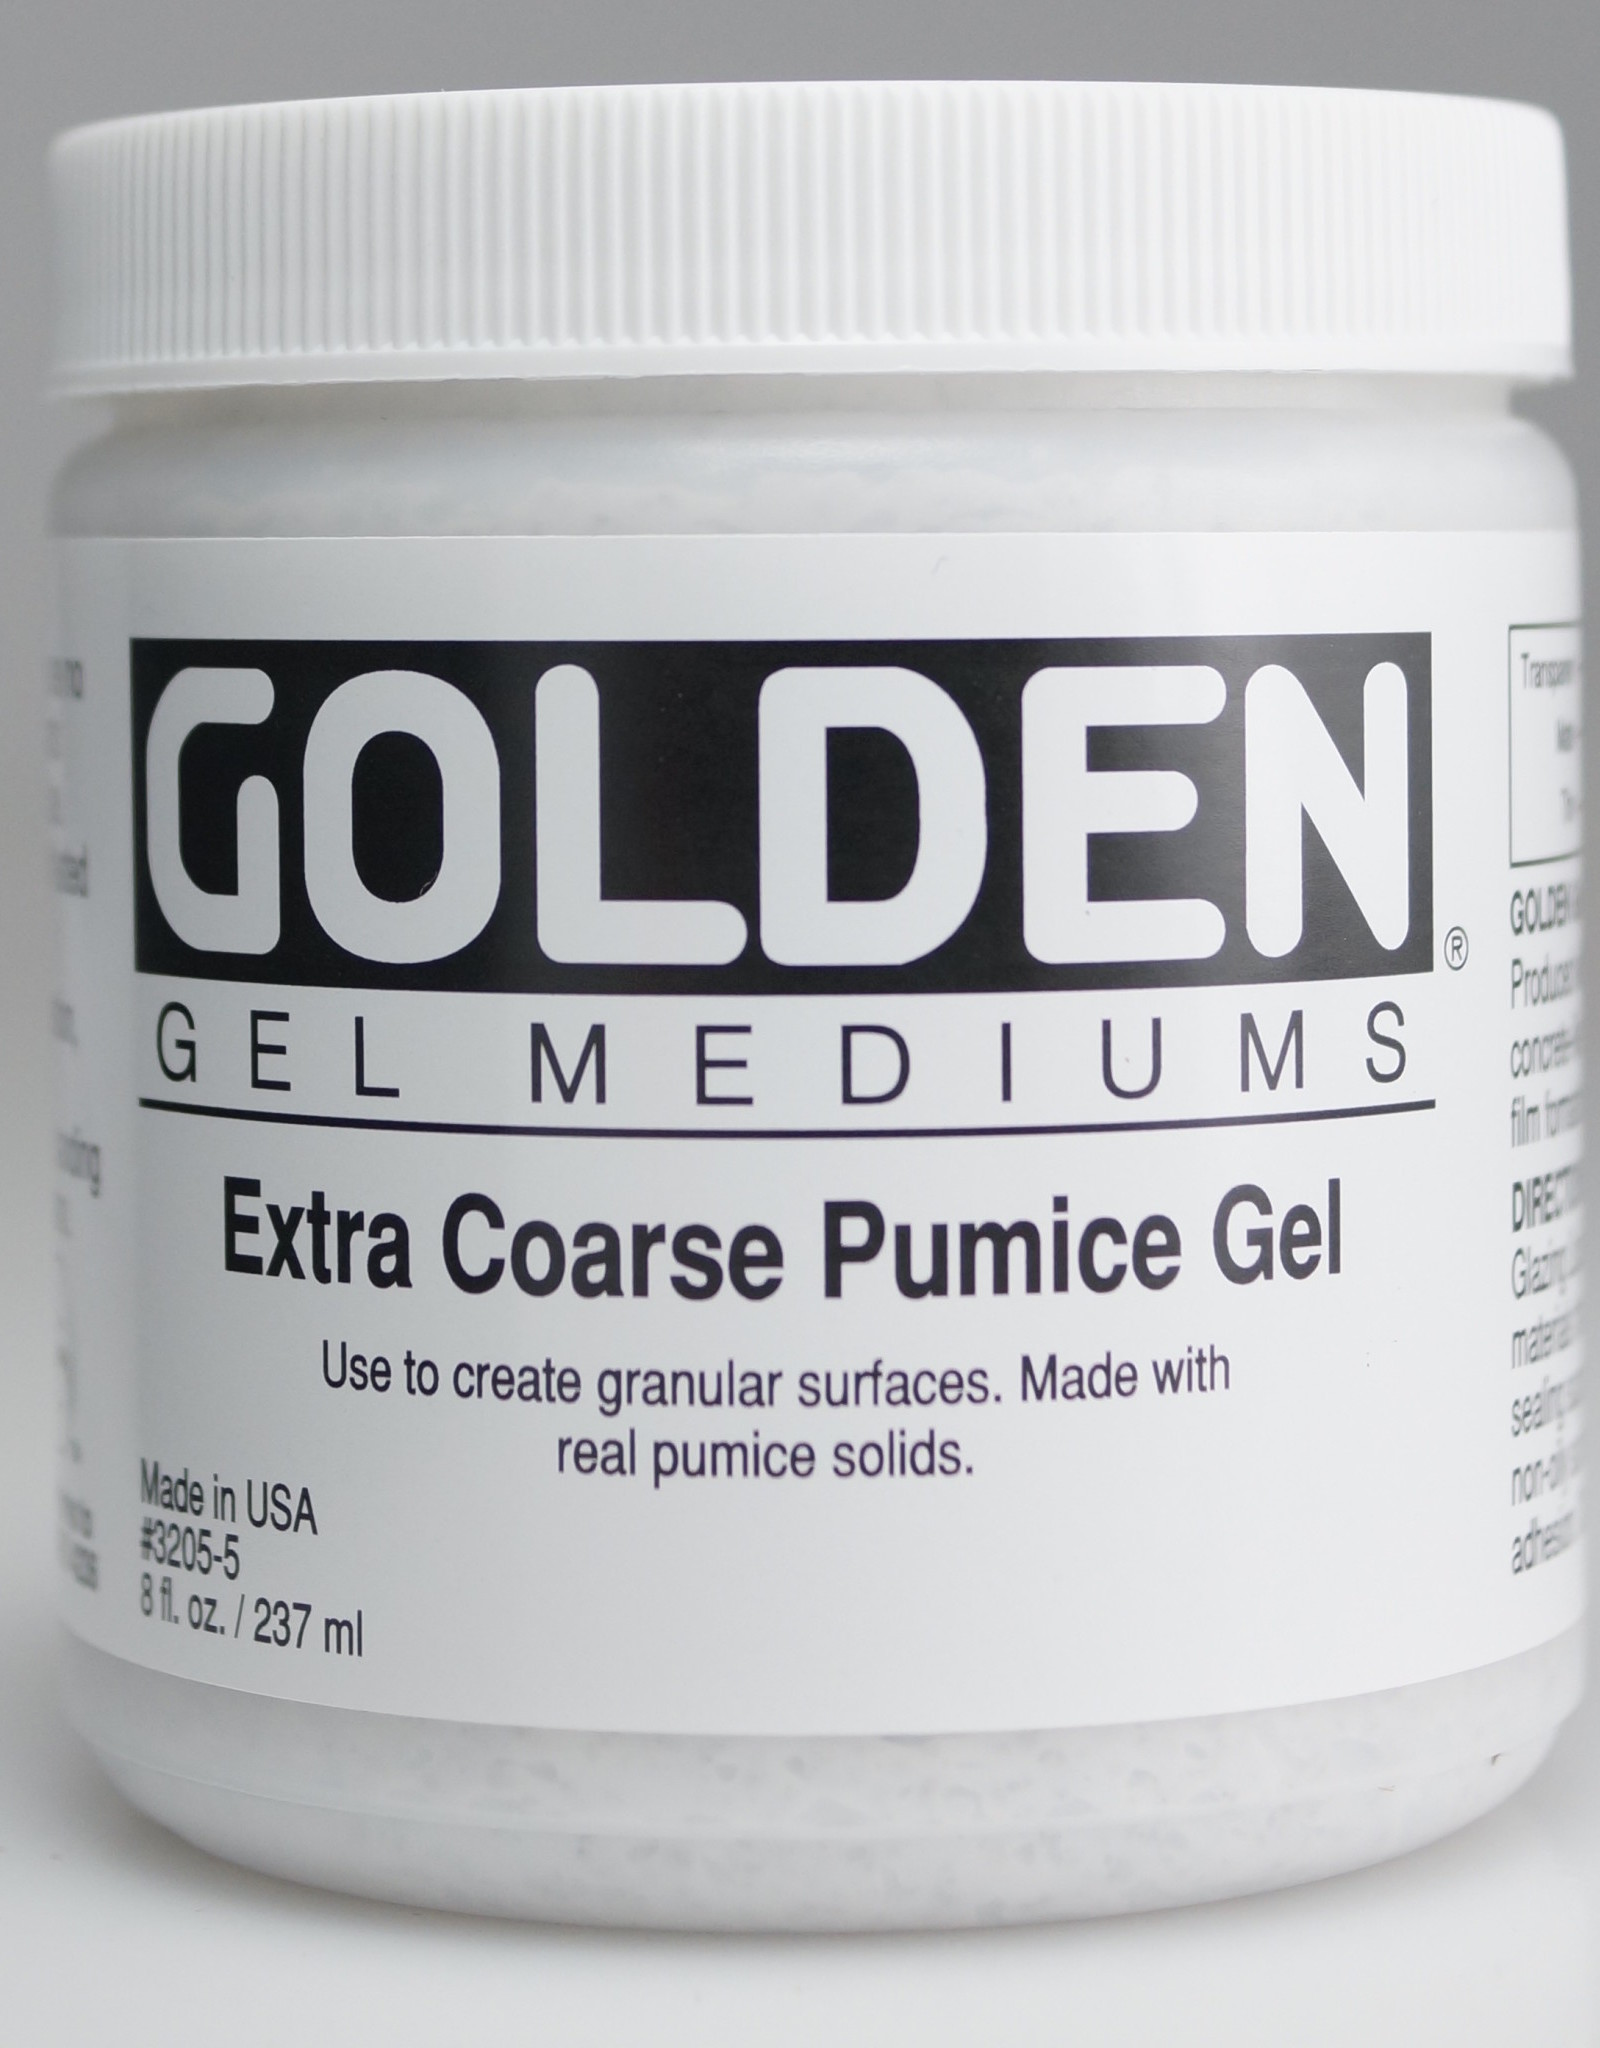 Golden, Extra Coarse Pumice Gel, Medium, 8 oz